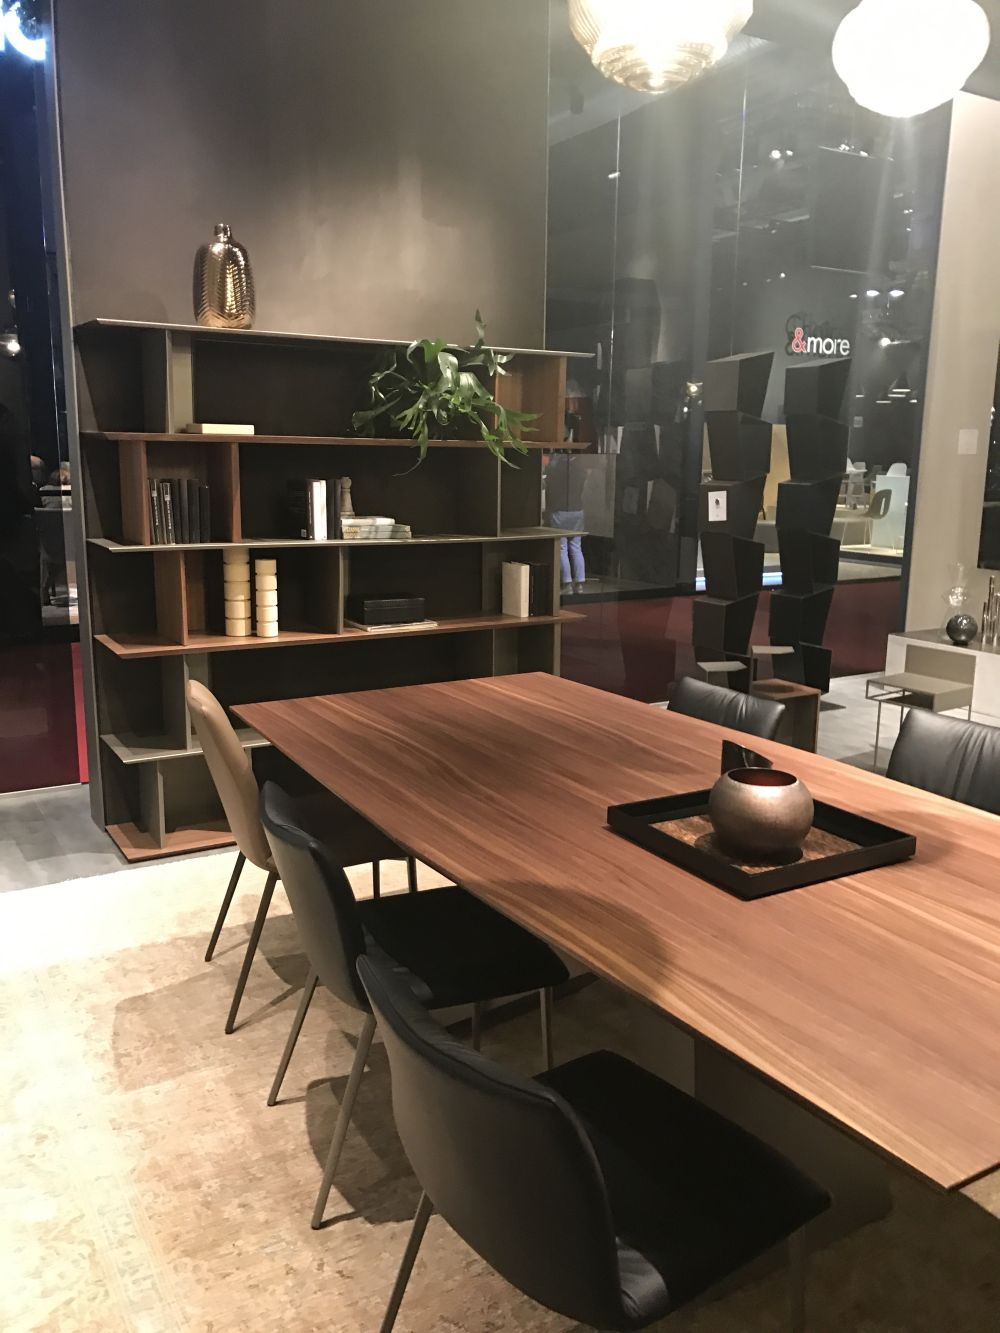 Pick the dining tables based on your needs and how you plan to use it in the future